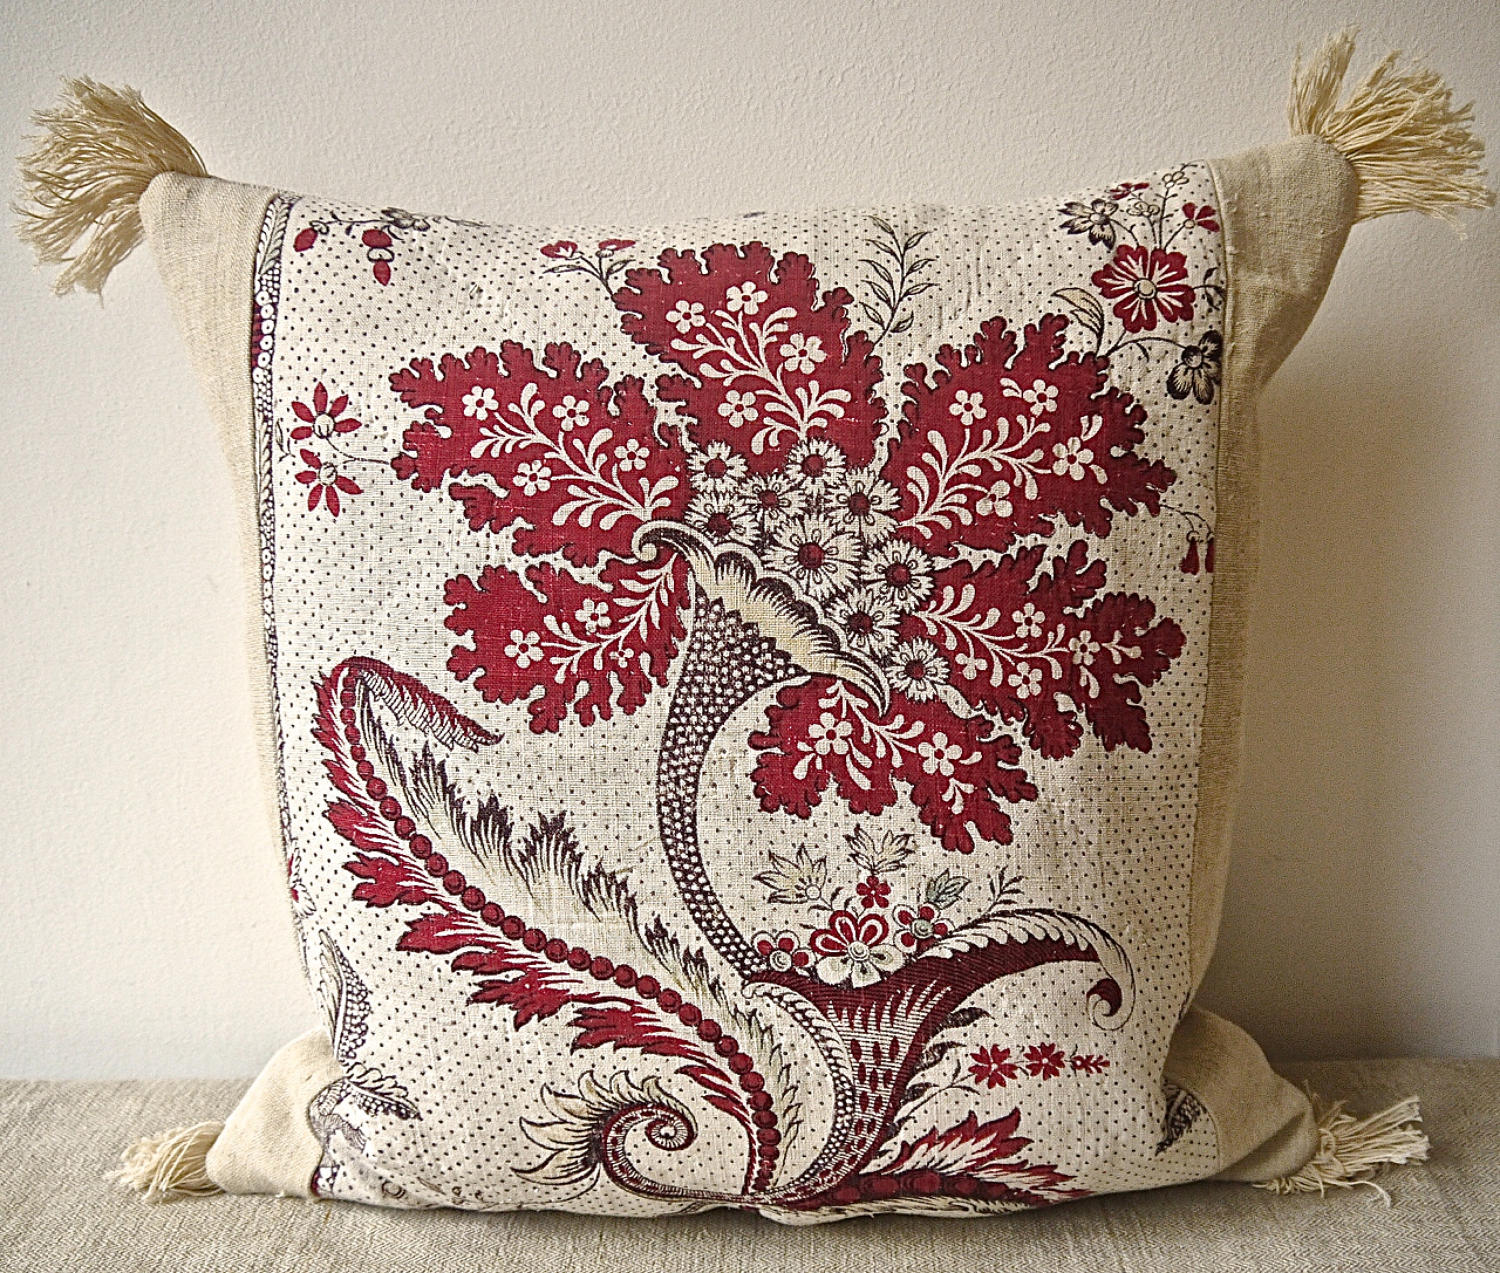 18th century French red and white flower cushion